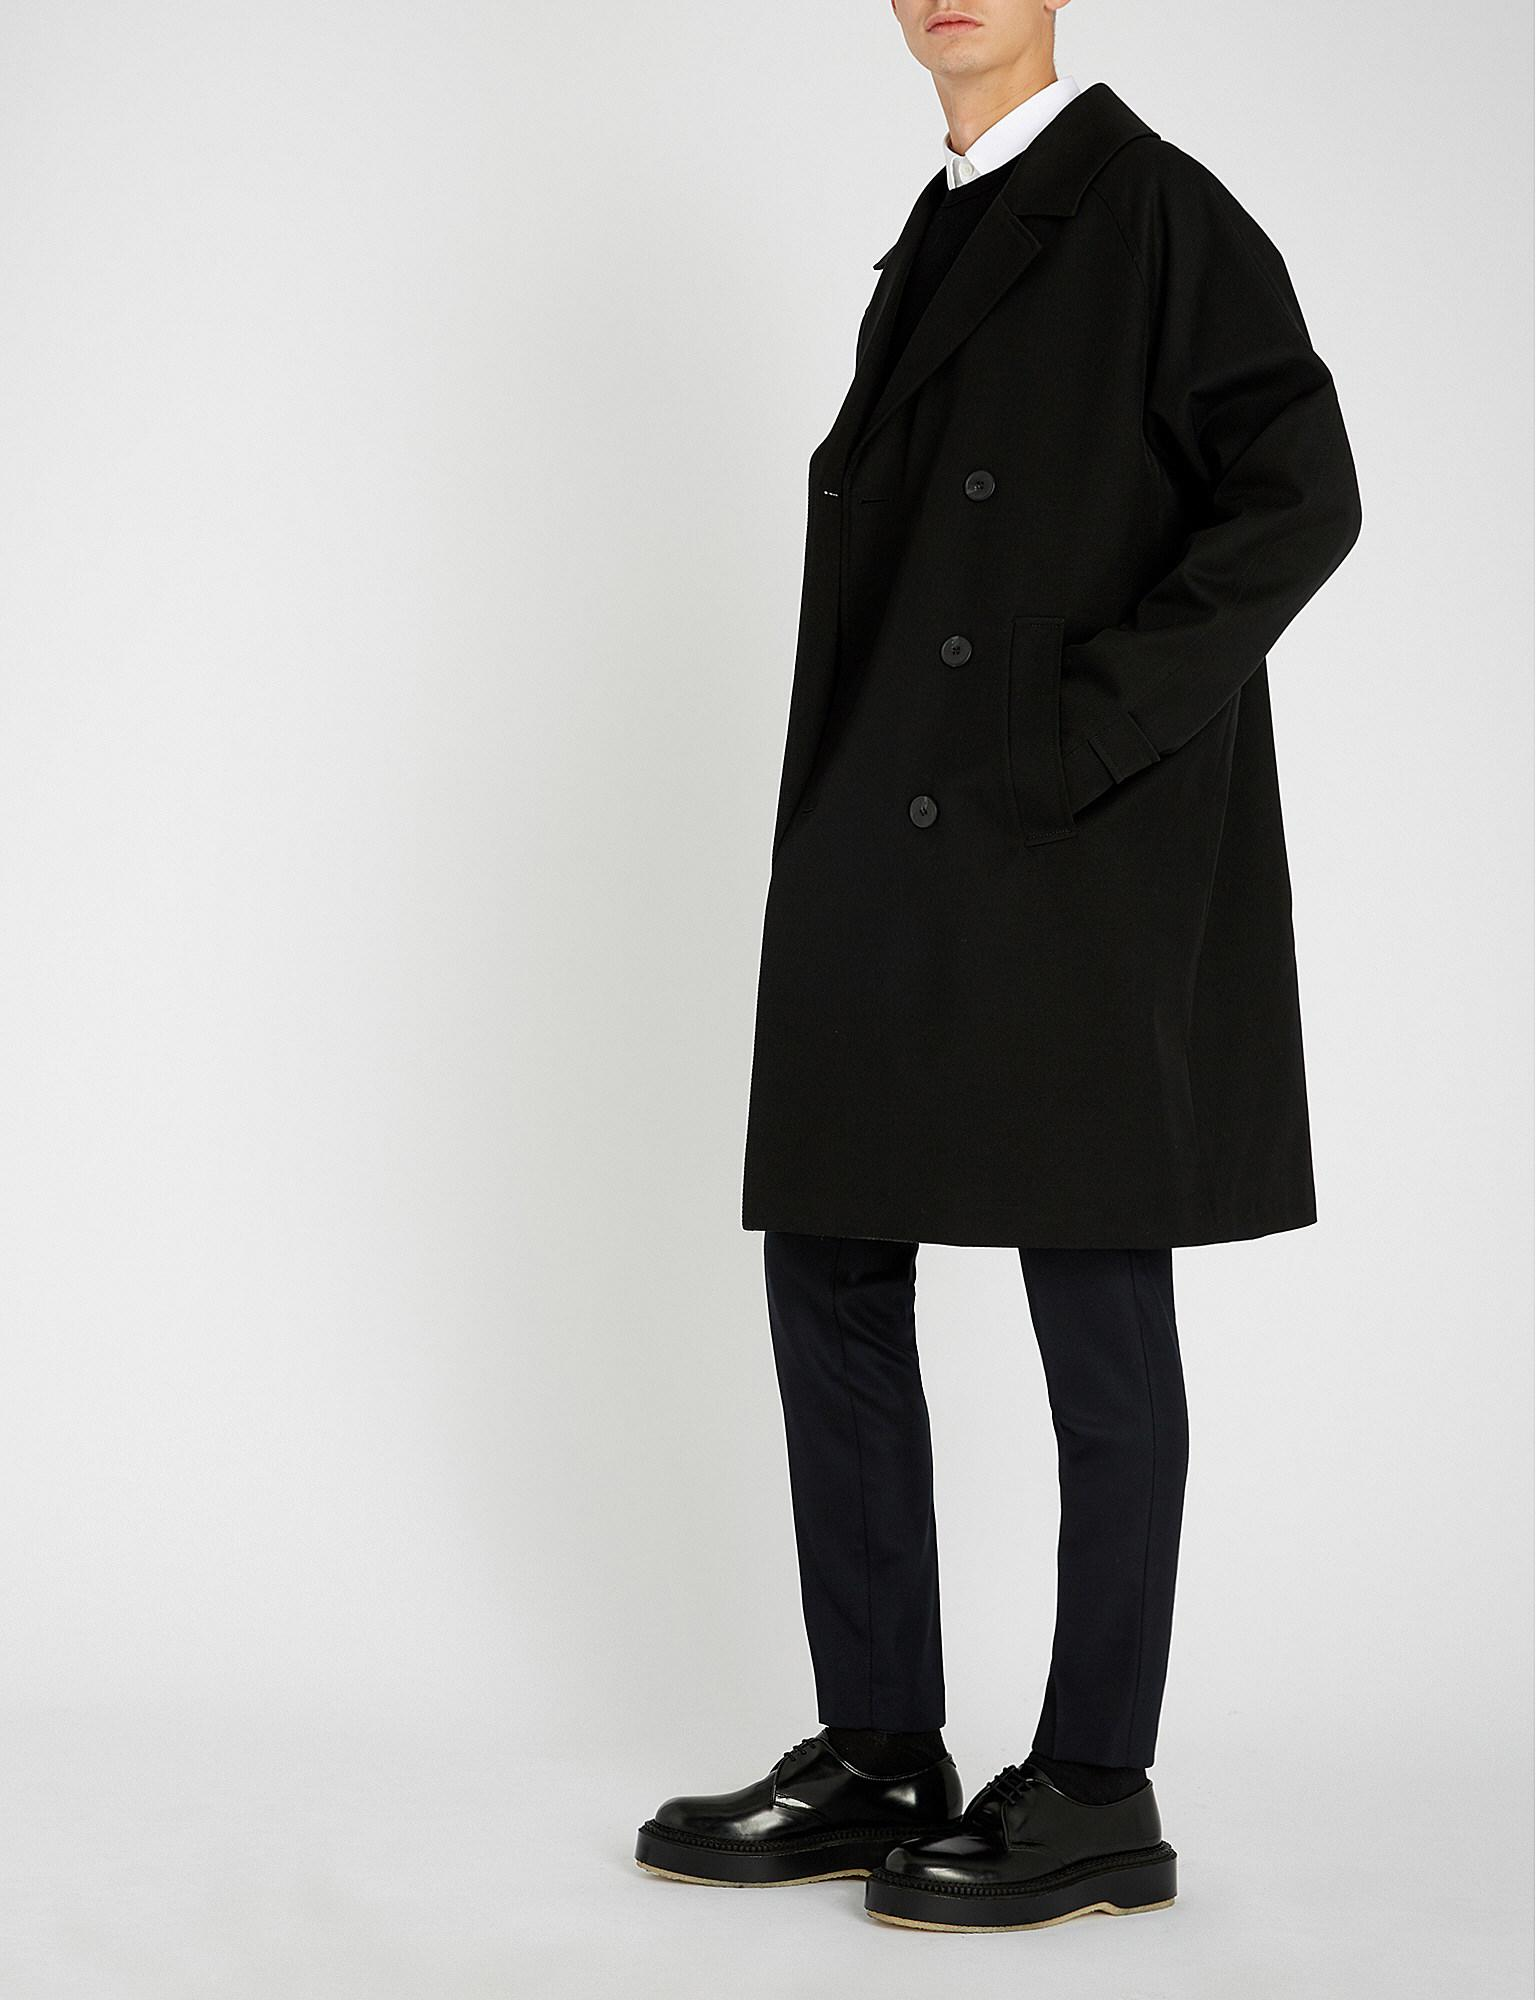 46d540a2e32 The Kooples Double-breasted Checked Stretch-wool Coat in Black for ...